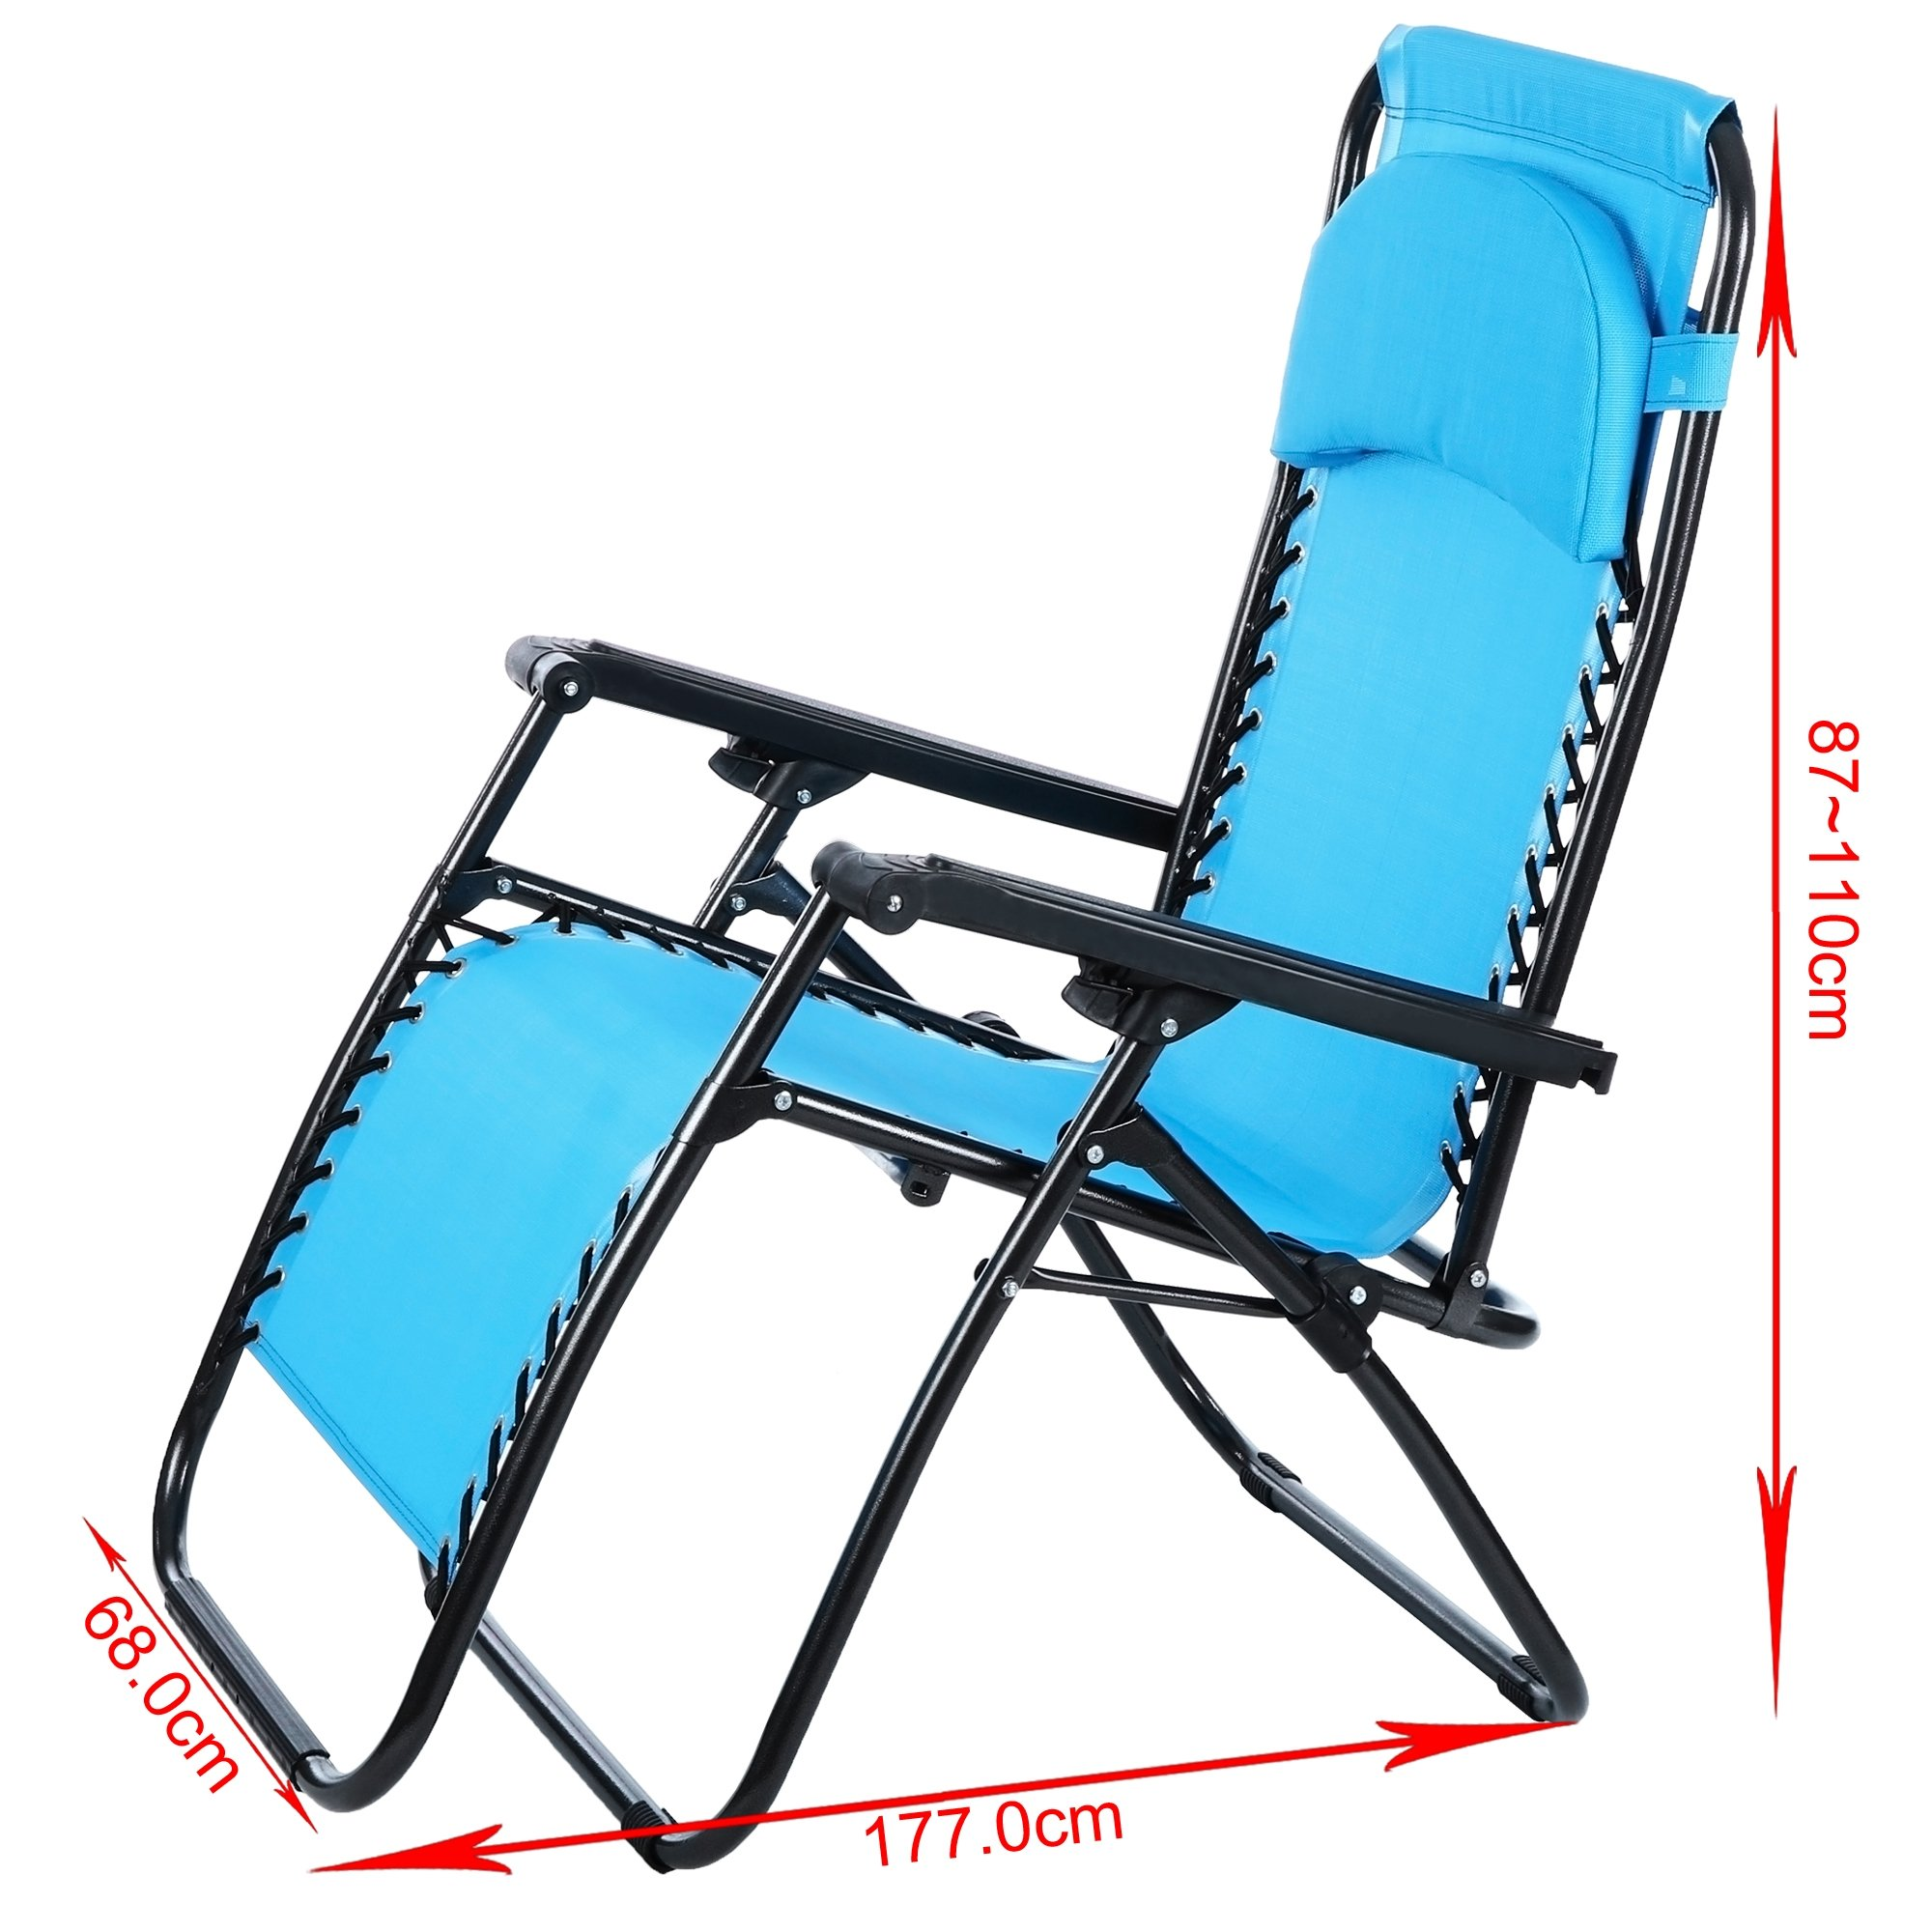 Zero Gravity Lounge Chair Camping Furniture, Lawn Reclining Patio Chair with Lightweight Steel Frame & Adjustable Padded Pillow & Dual Finger Tip Locking System [ US STOCK ] (Blue) by Ferty